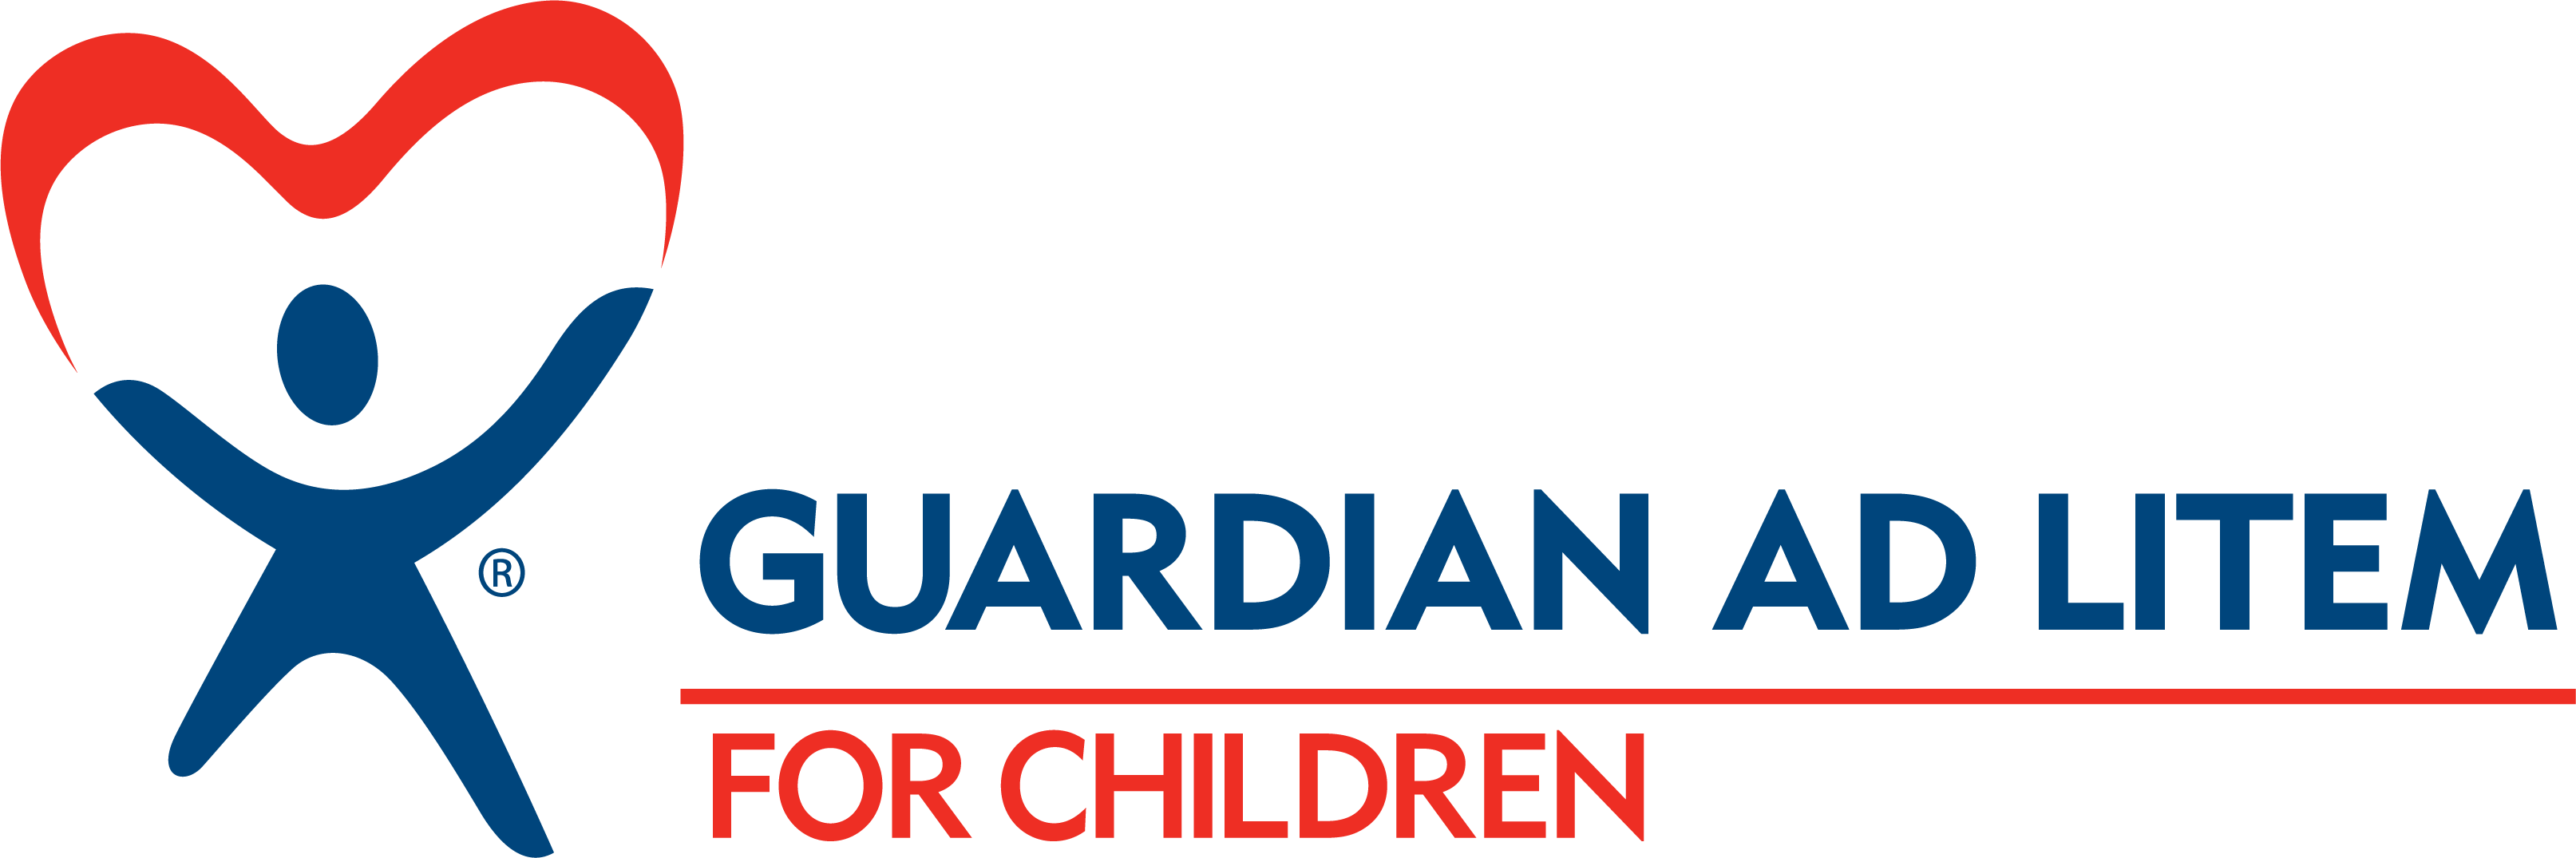 About Us | Guardian ad Litem | Nonprofit To Help Abused Children